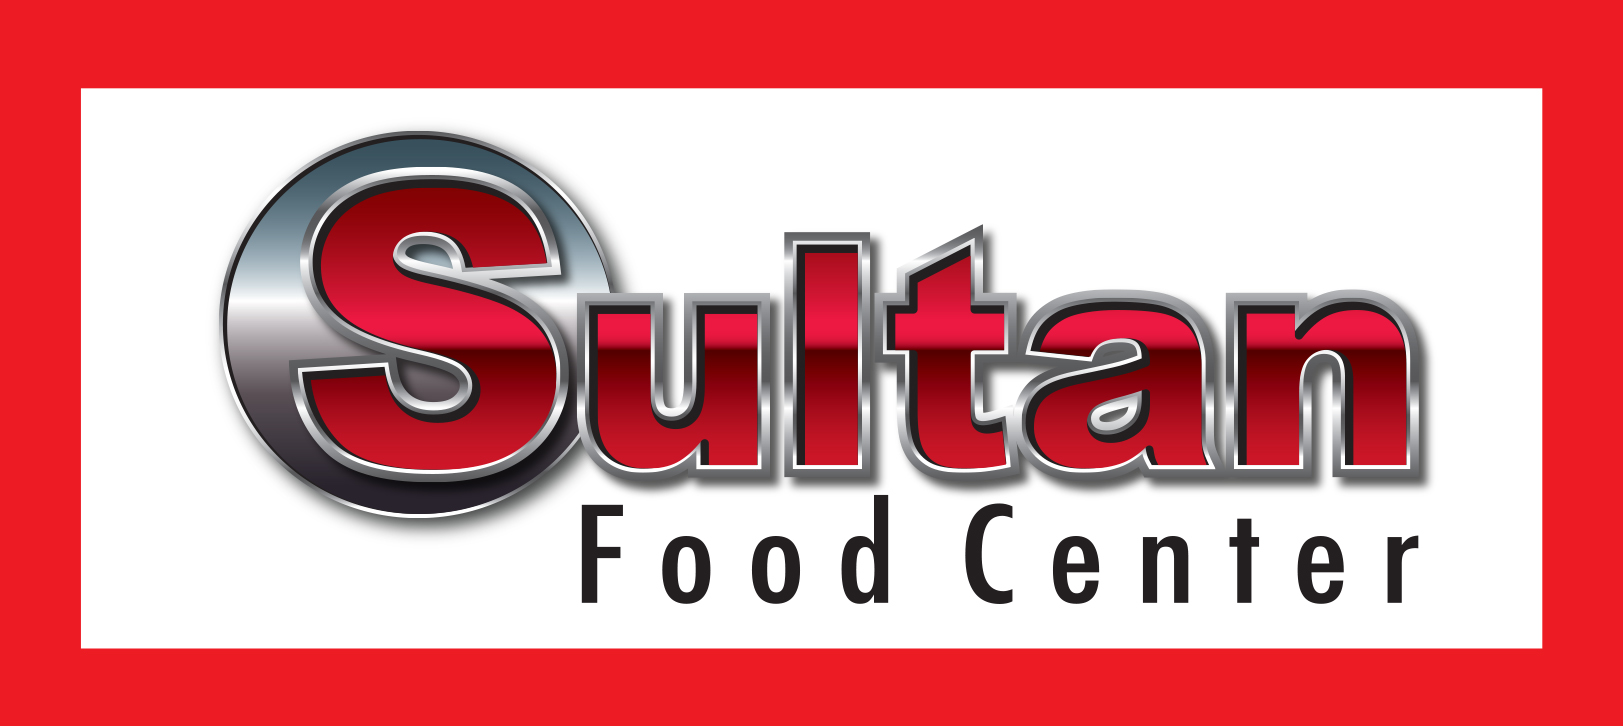 sultan food center